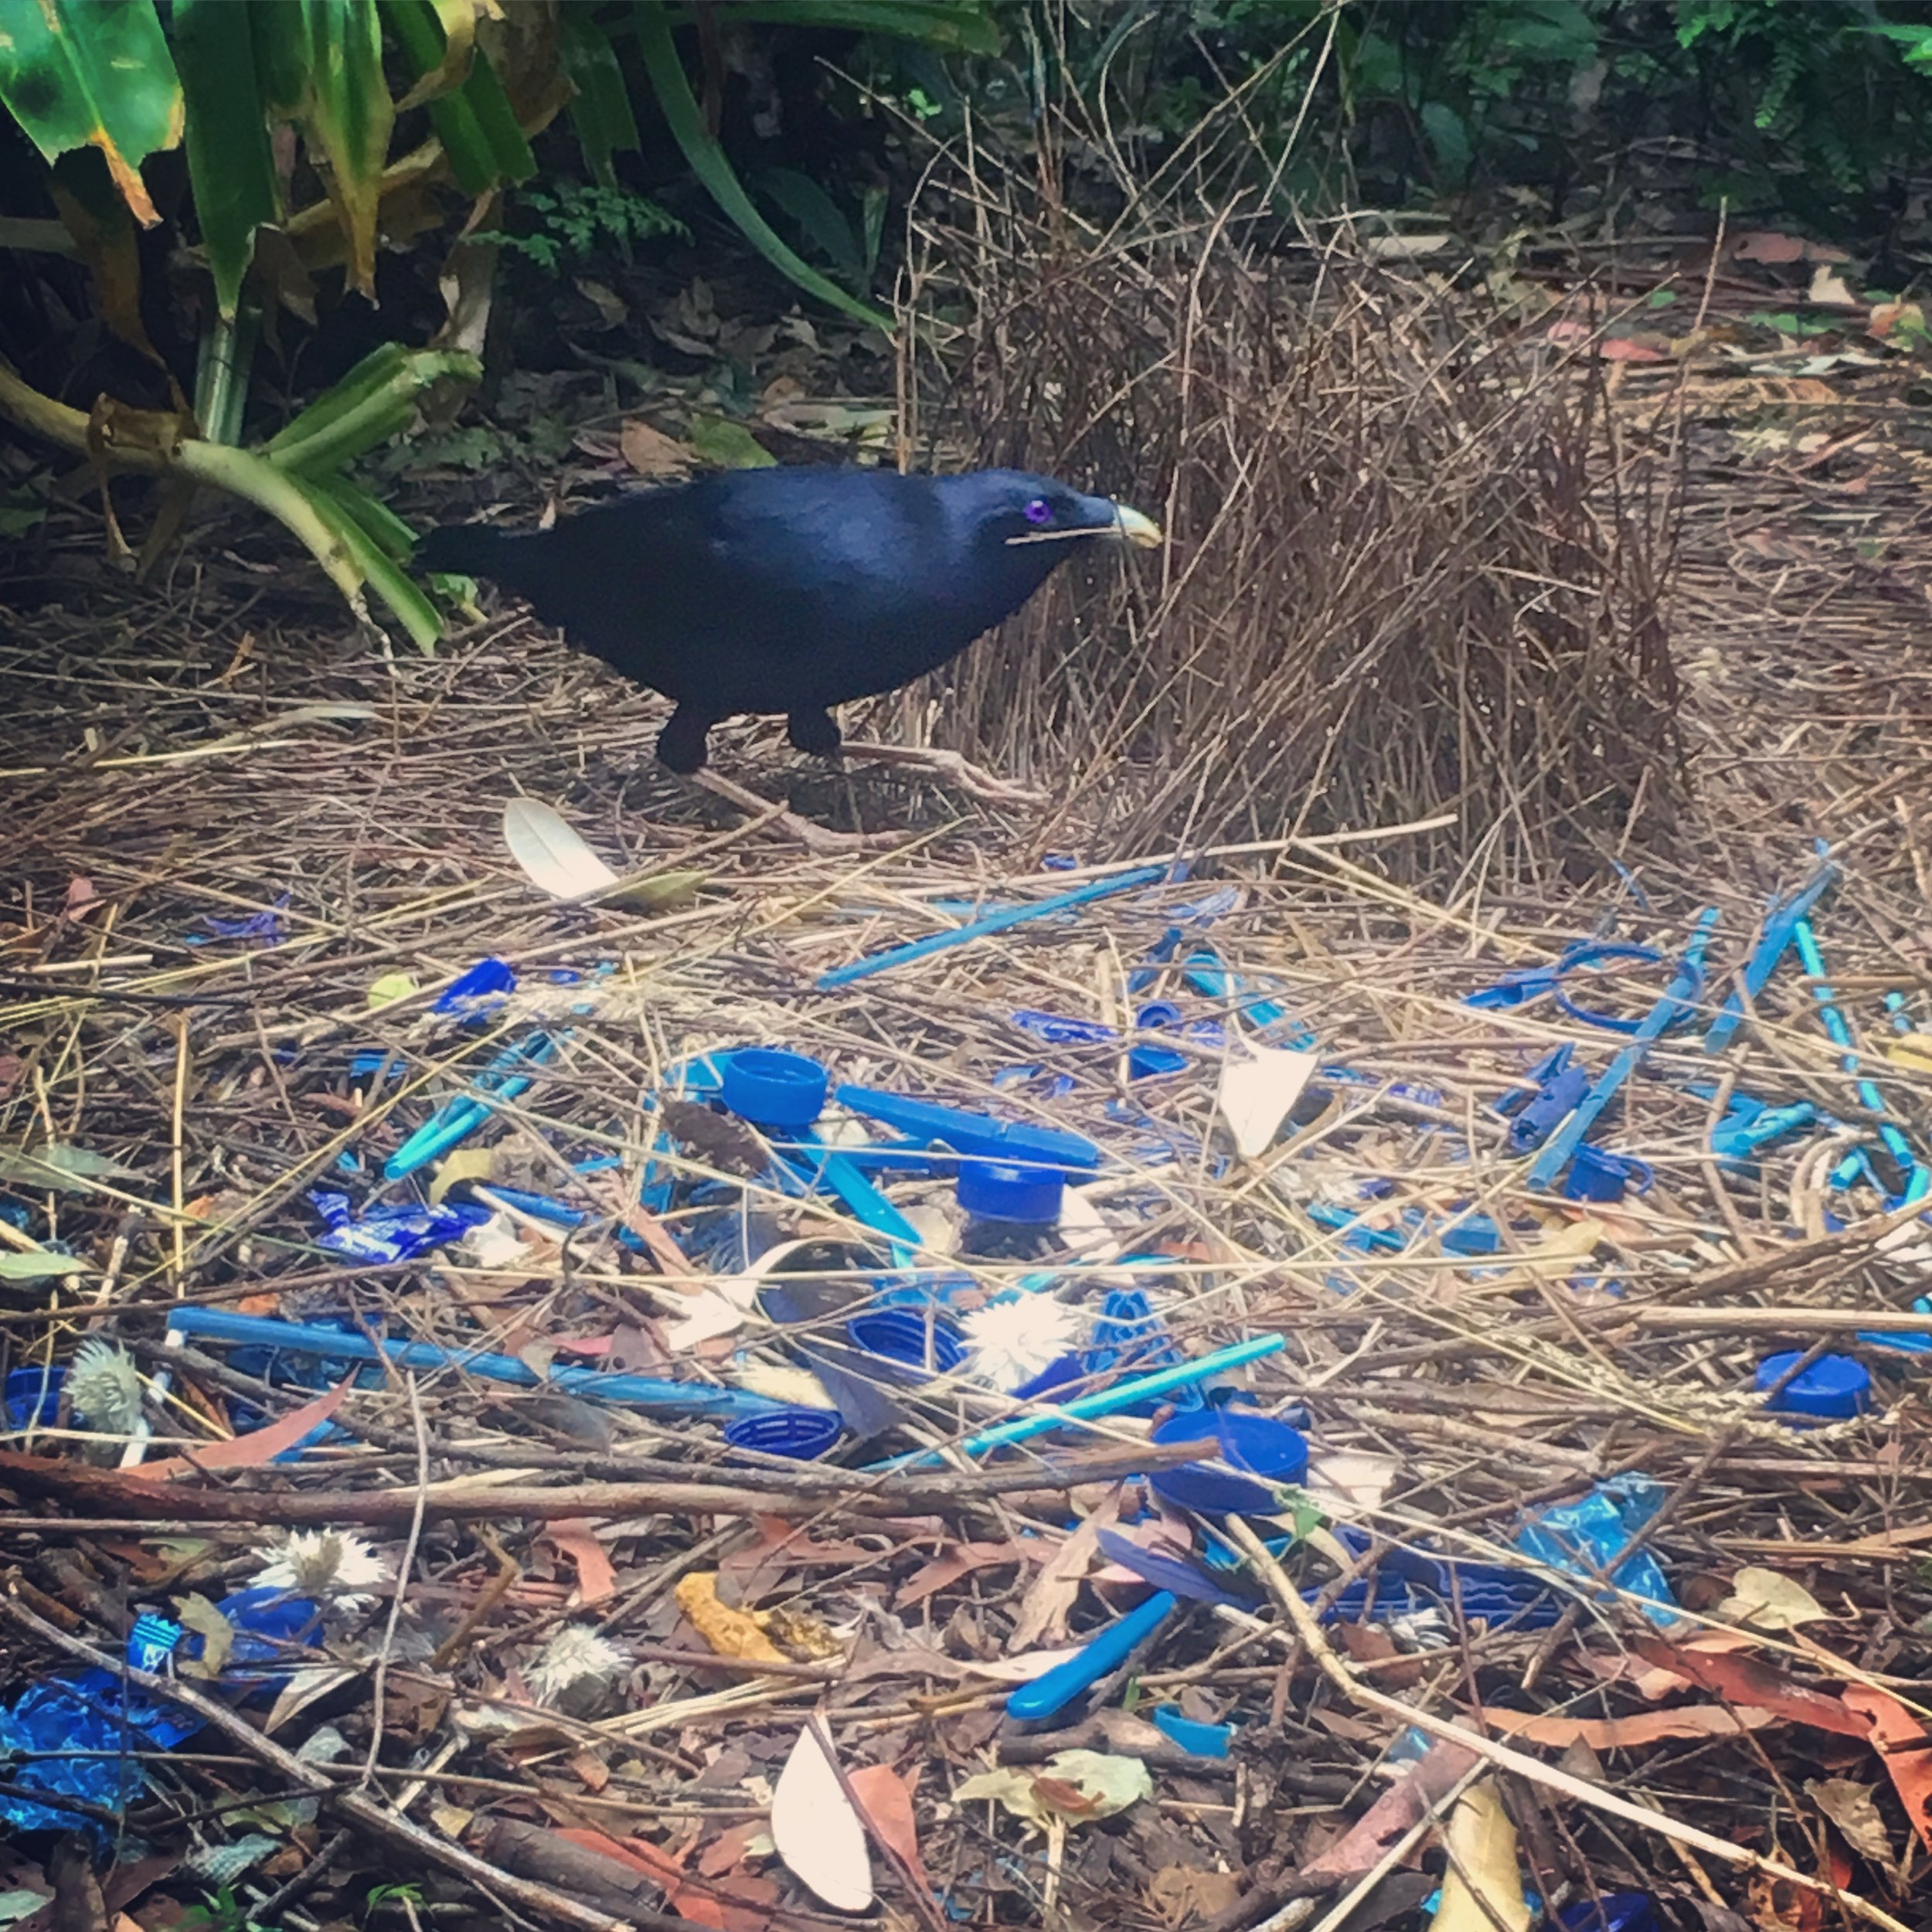 A photo I took while camping in the Lamington National Park. This is the Satin Bower bird, who collects blue things to line his bower to impress a mate. All his blue things are pieces of plastic.